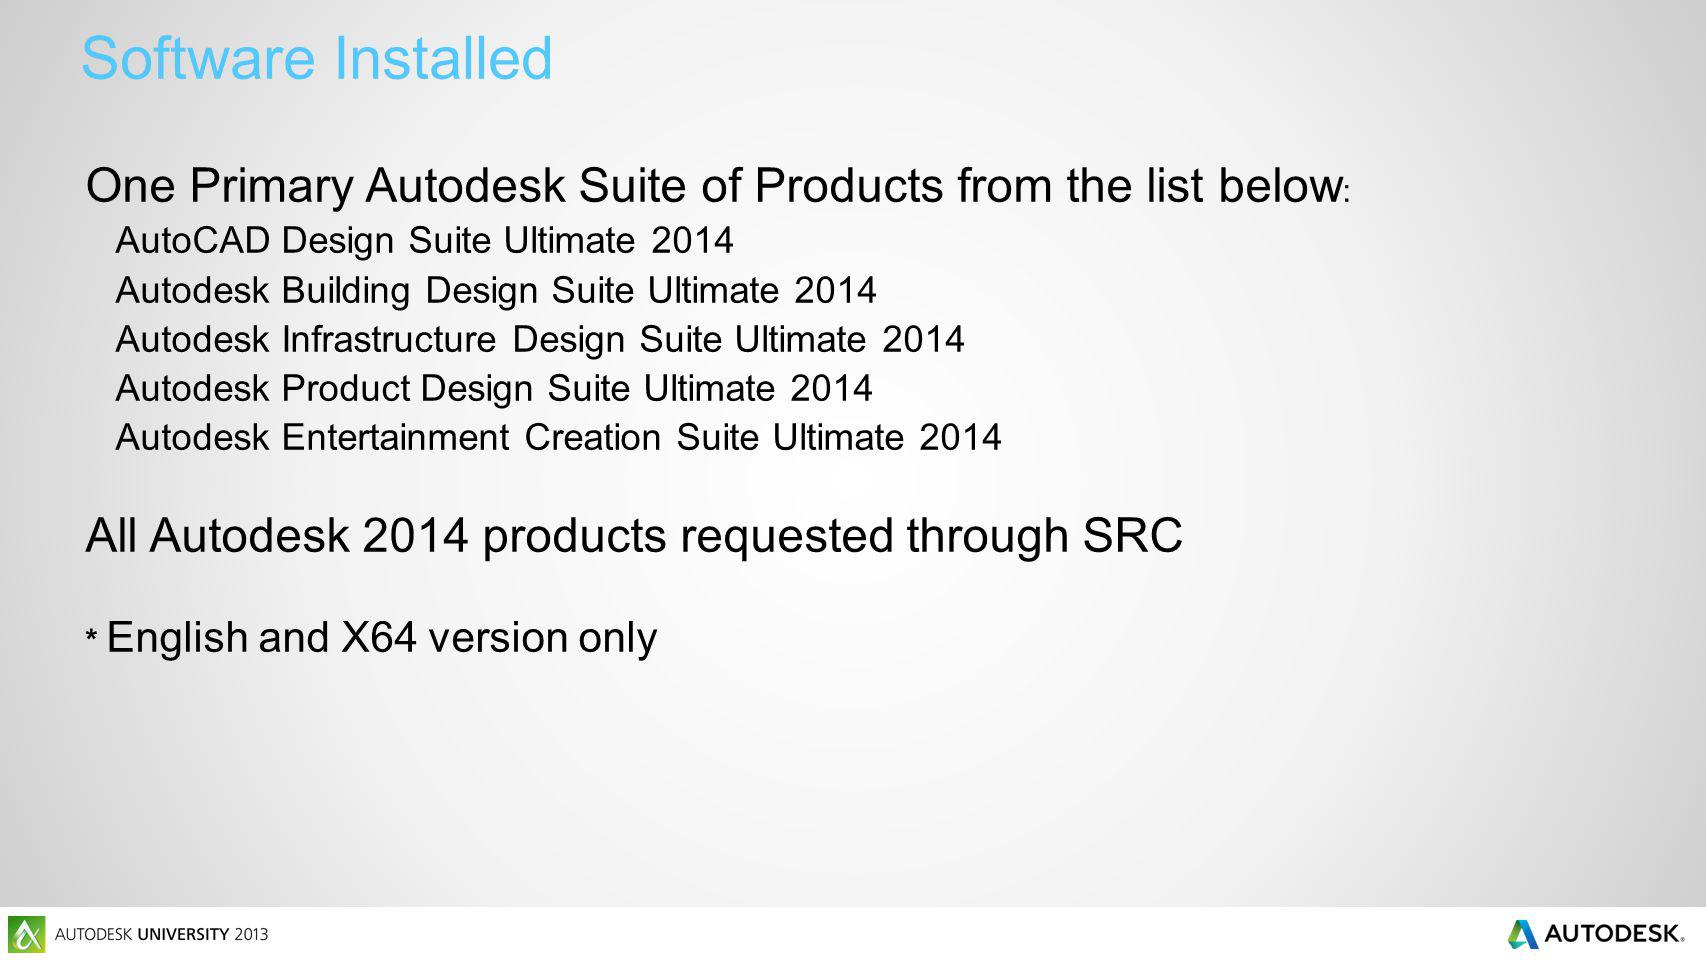 One Primary Autodesk Suite of Products from the list below : AutoCAD Design Suite Ultimate 2014 Autodesk Building Design Suite Ultimate 2014 Autodesk Infrastructure Design Suite Ultimate 2014 Autodesk Product Design Suite Ultimate 2014 Autodesk Entertainment Creation Suite Ultimate 2014 All Autodesk 2014 products requested through SRC * English and X64 version only Software Installed